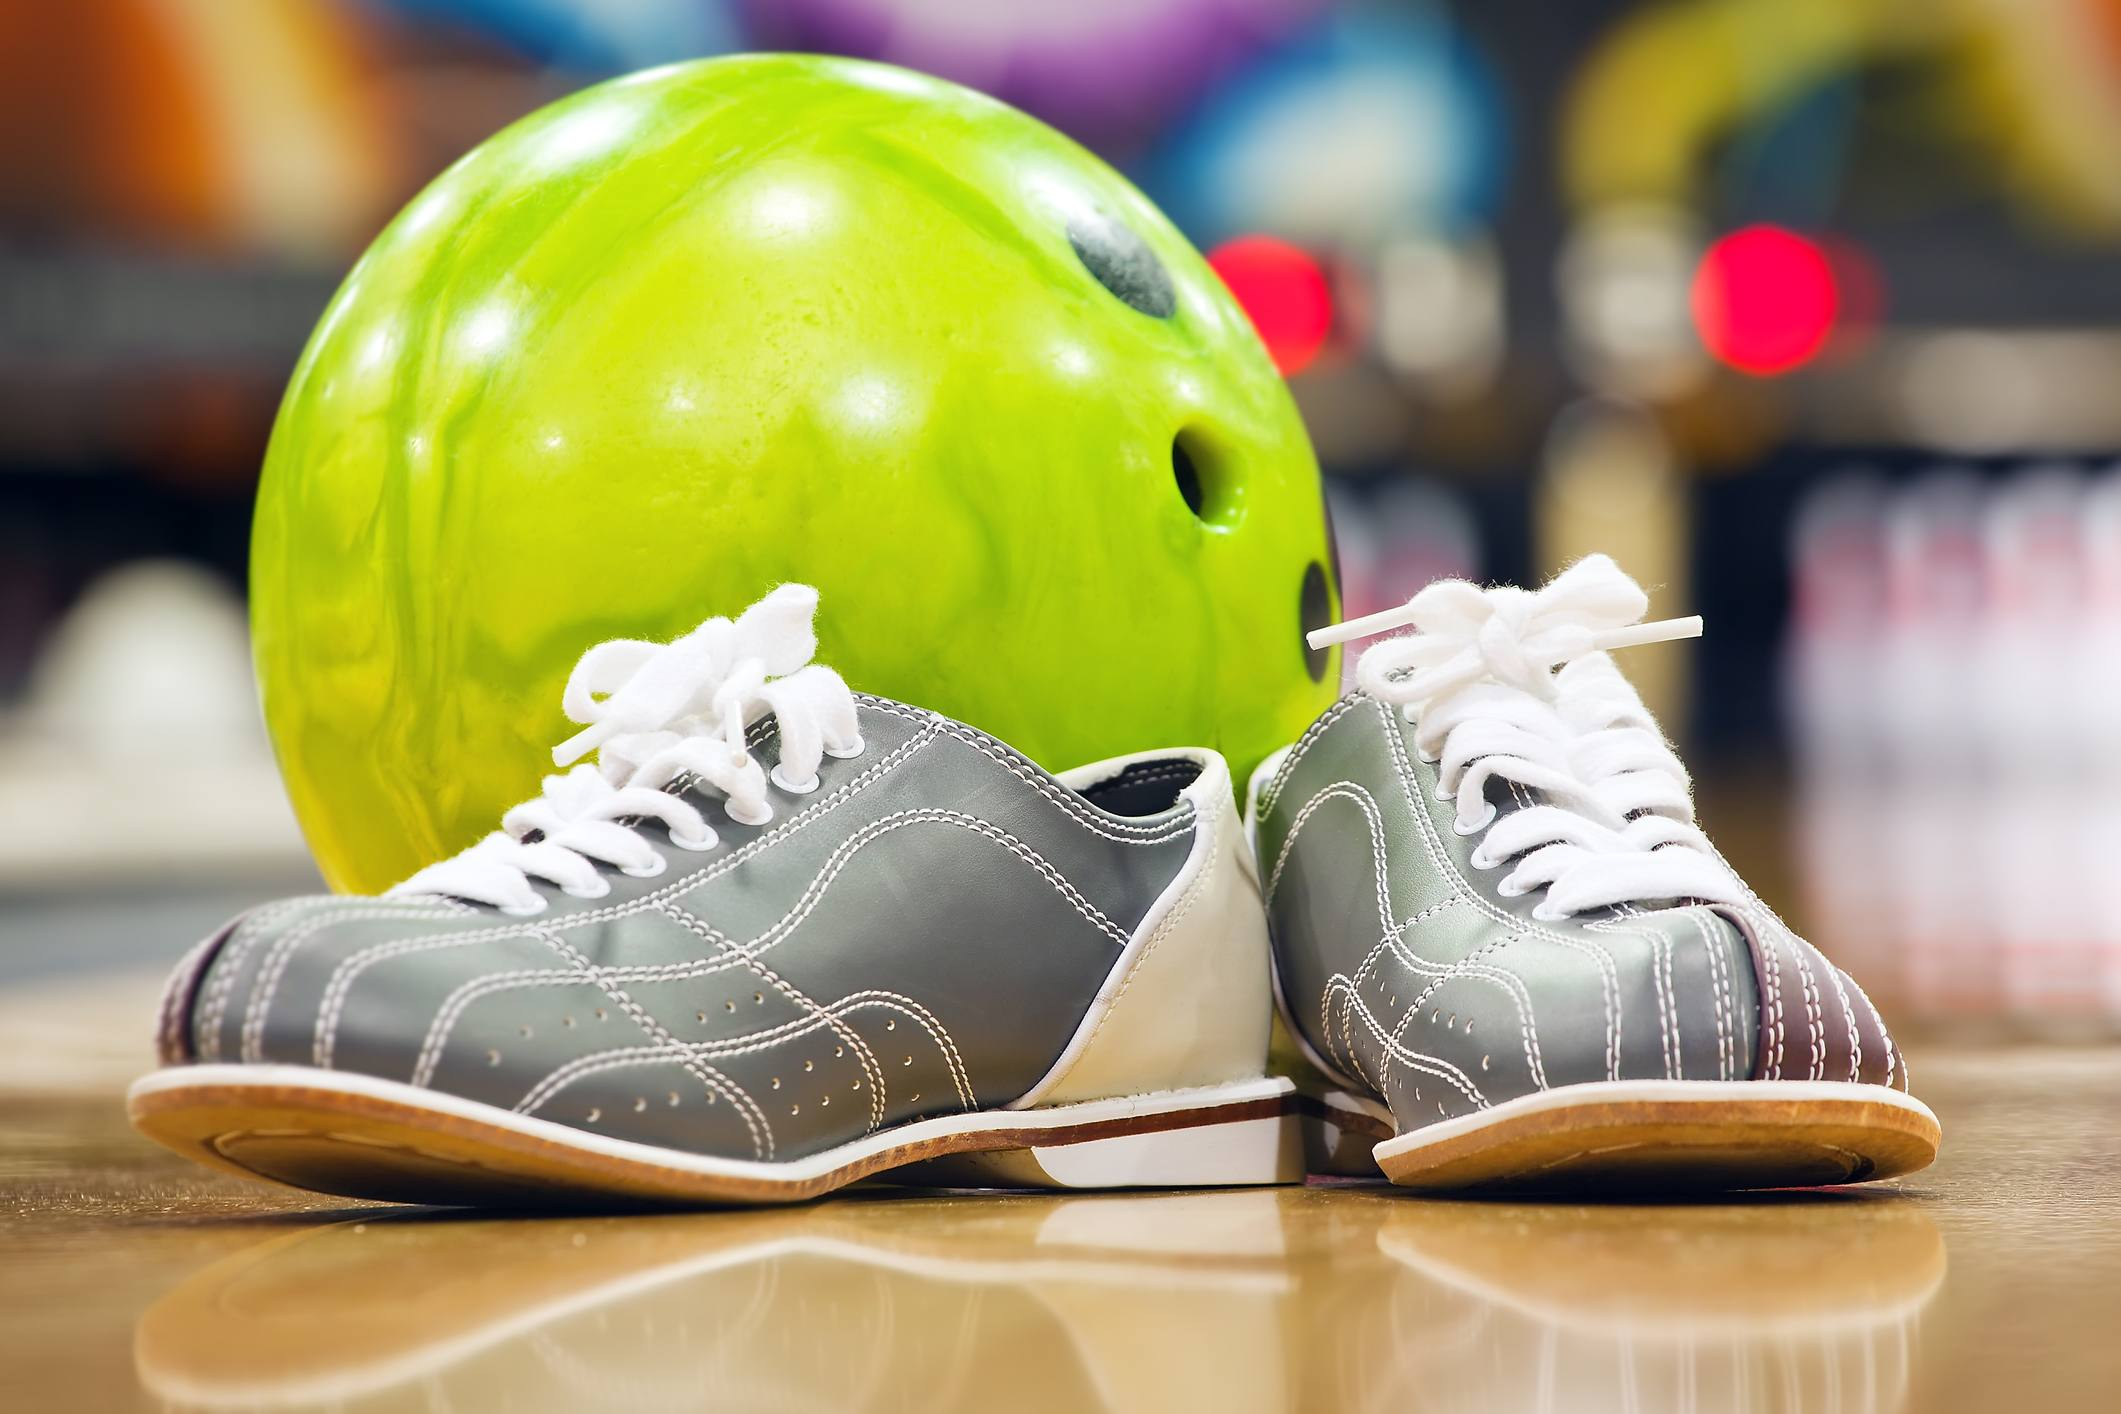 Close-up of bowling shoes and neon green ball